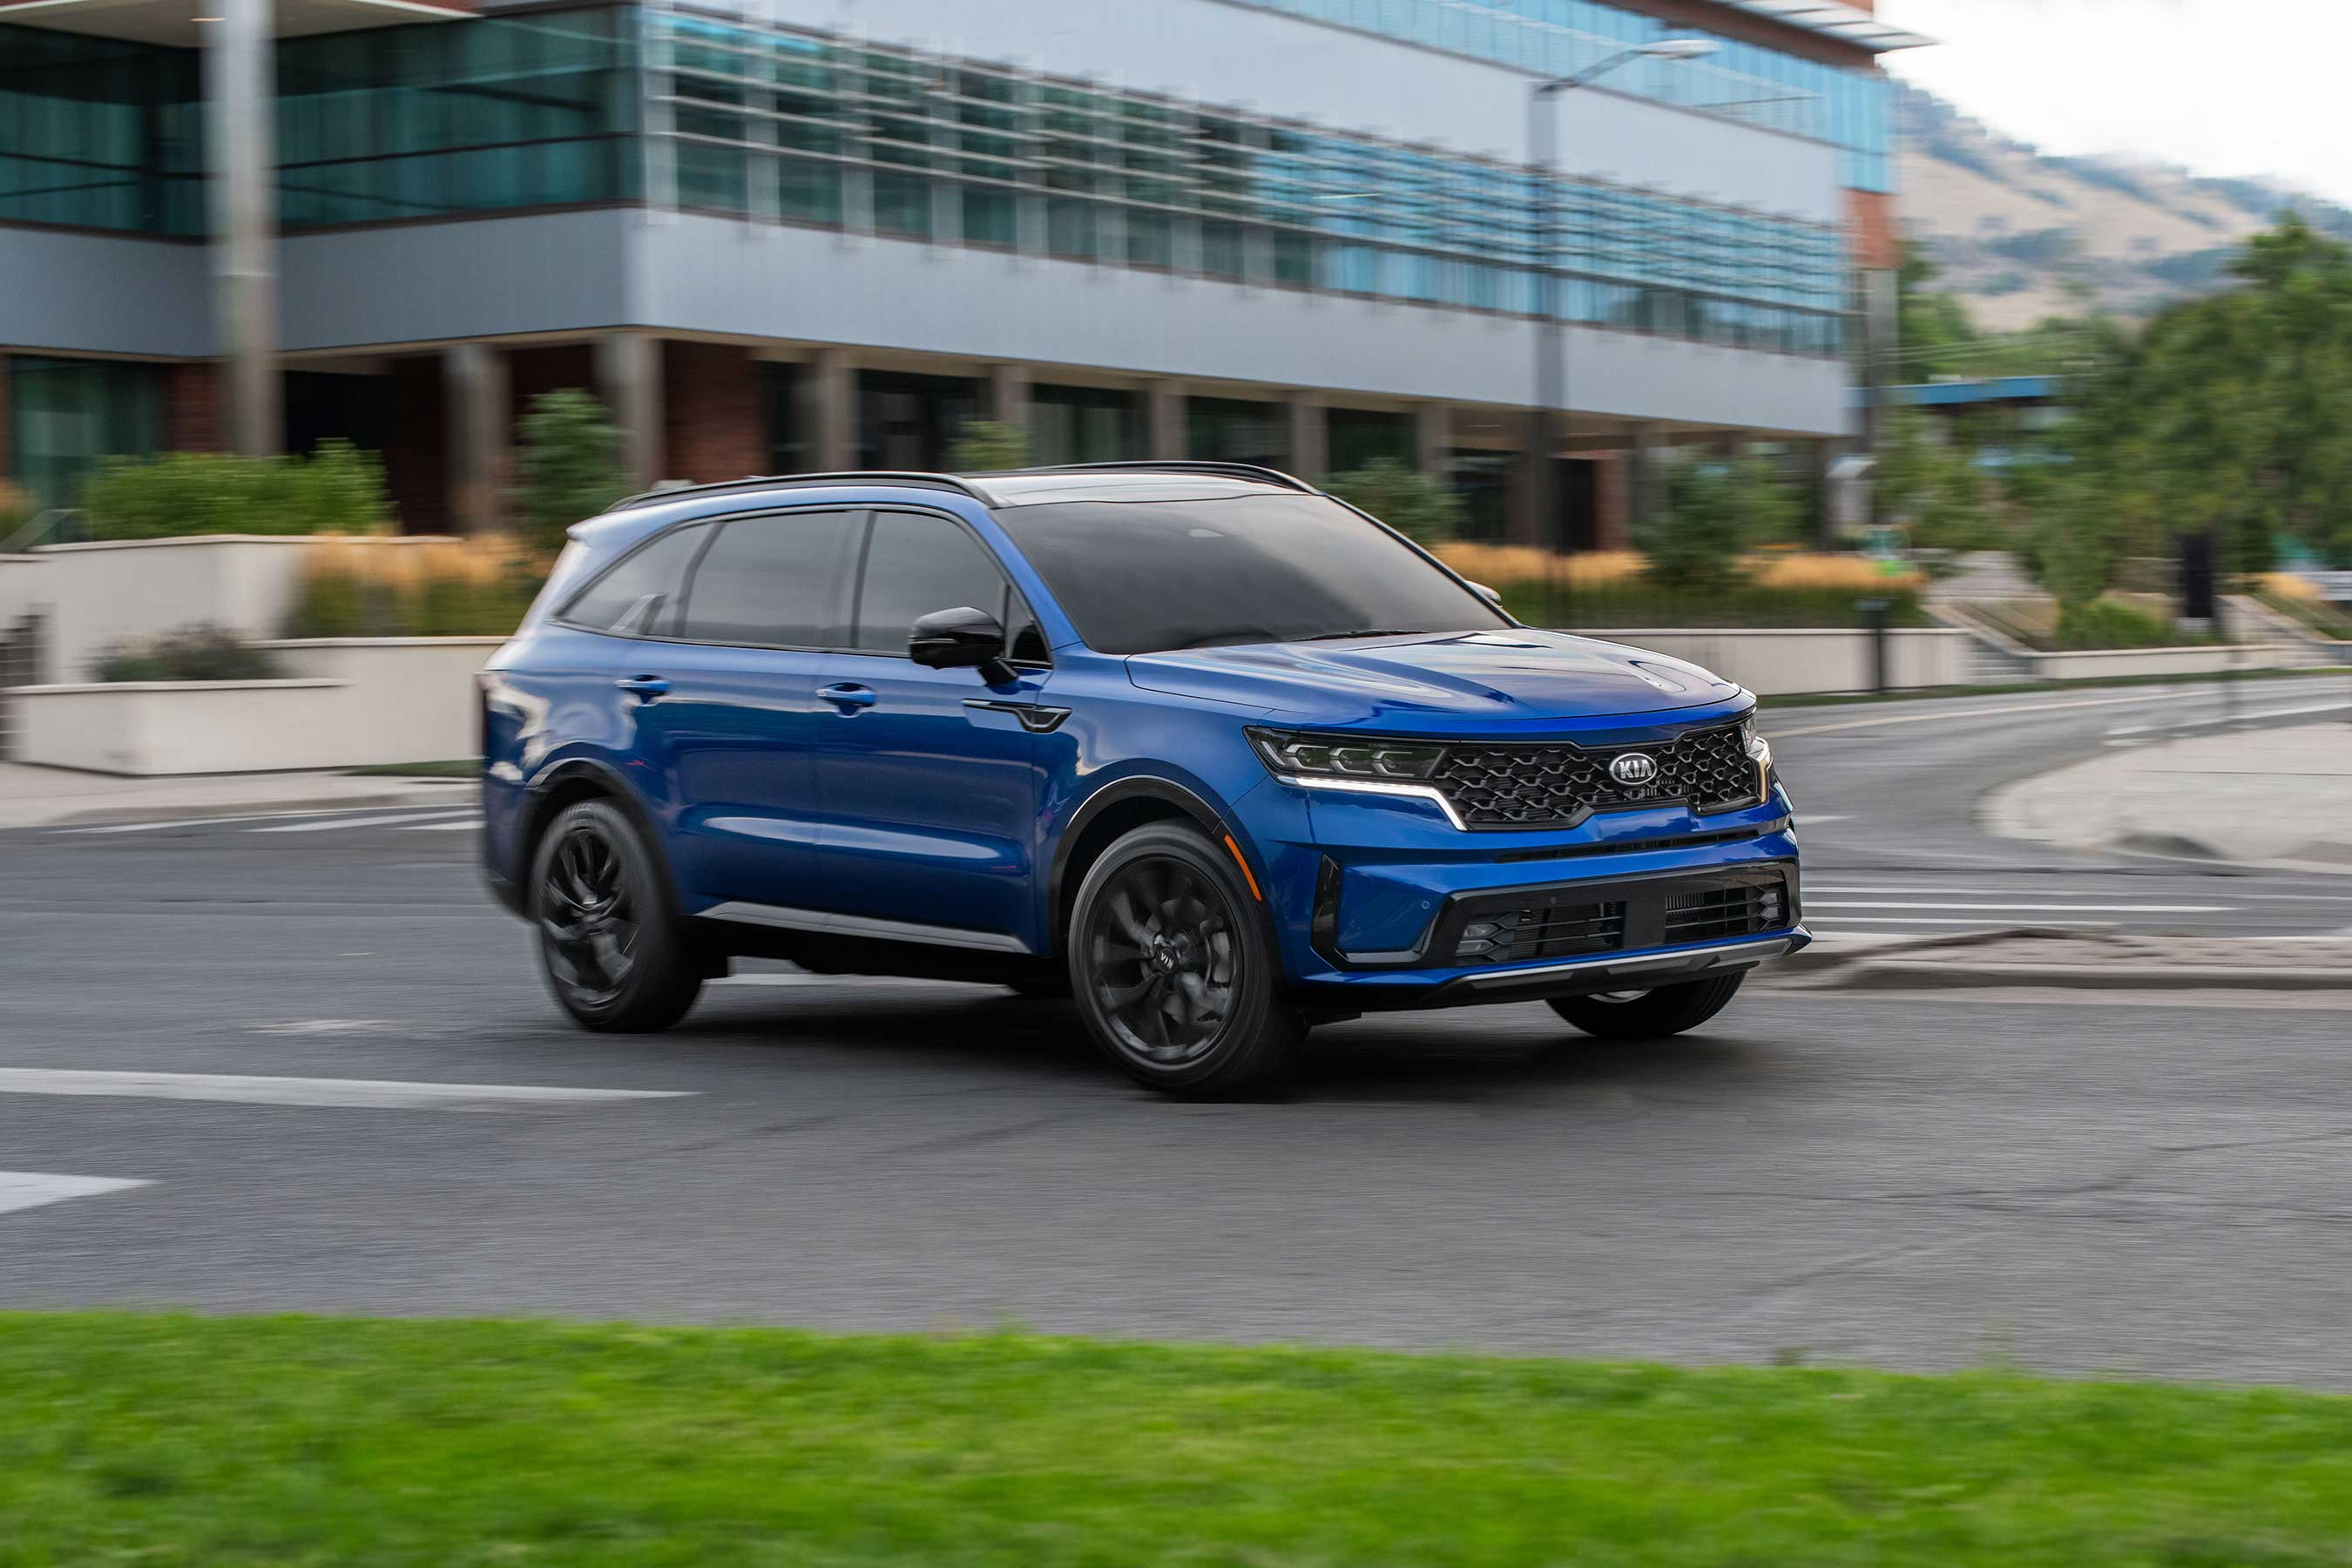 Kia's all-new 2021 Sorento will initially be available with three powertrains, including a segment exclusive turbo hybrid. A PHEV will be introduced next year.